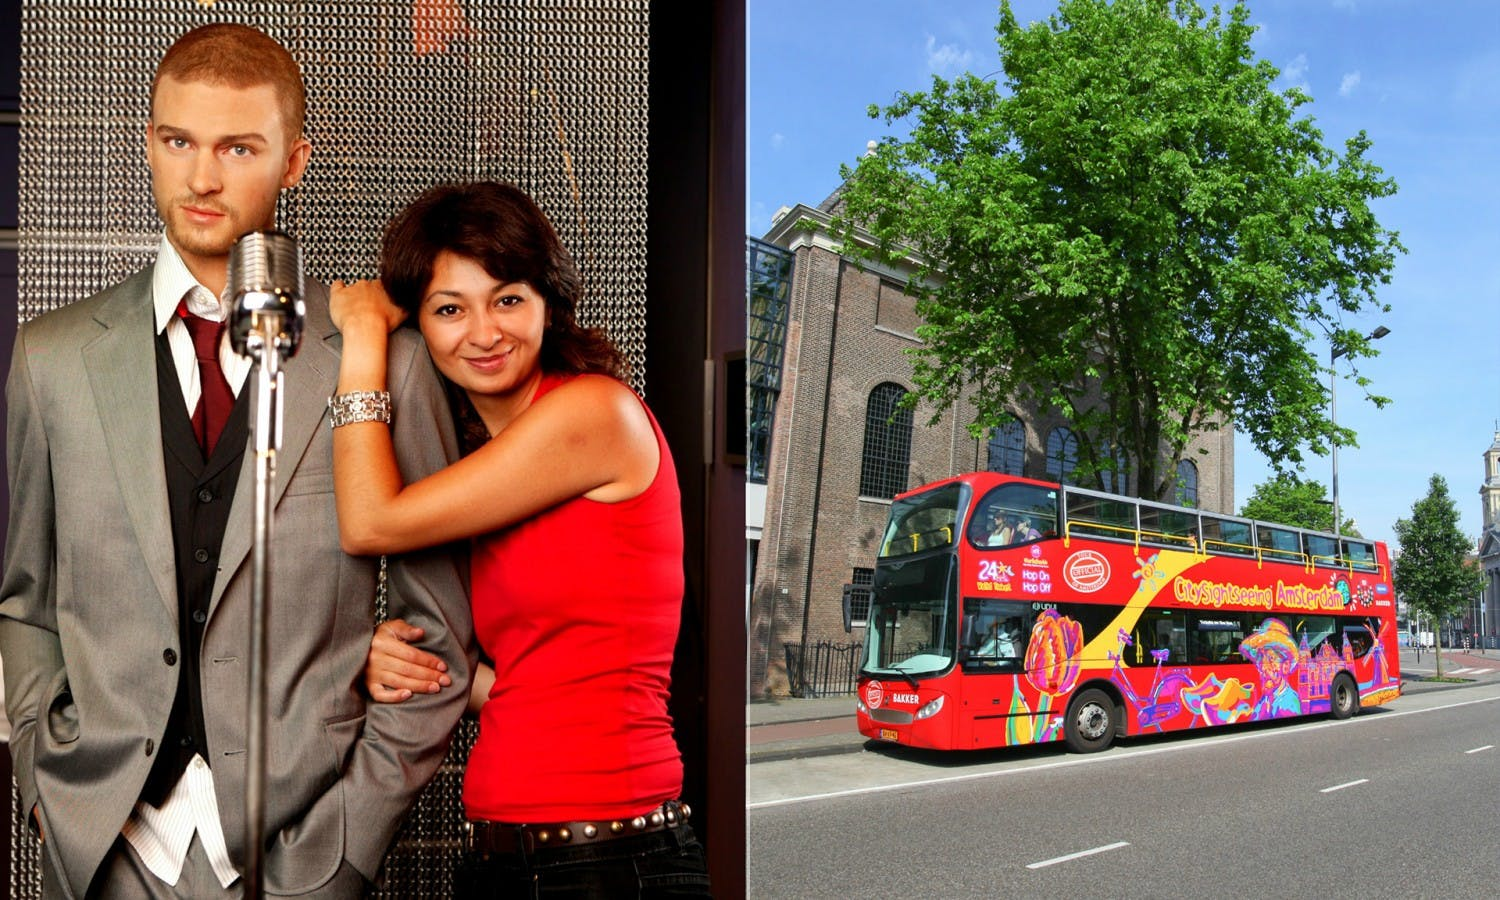 Amsterdam Madame Tussauds fast track entry and 24-hour hop-on-hop-off bus ticket